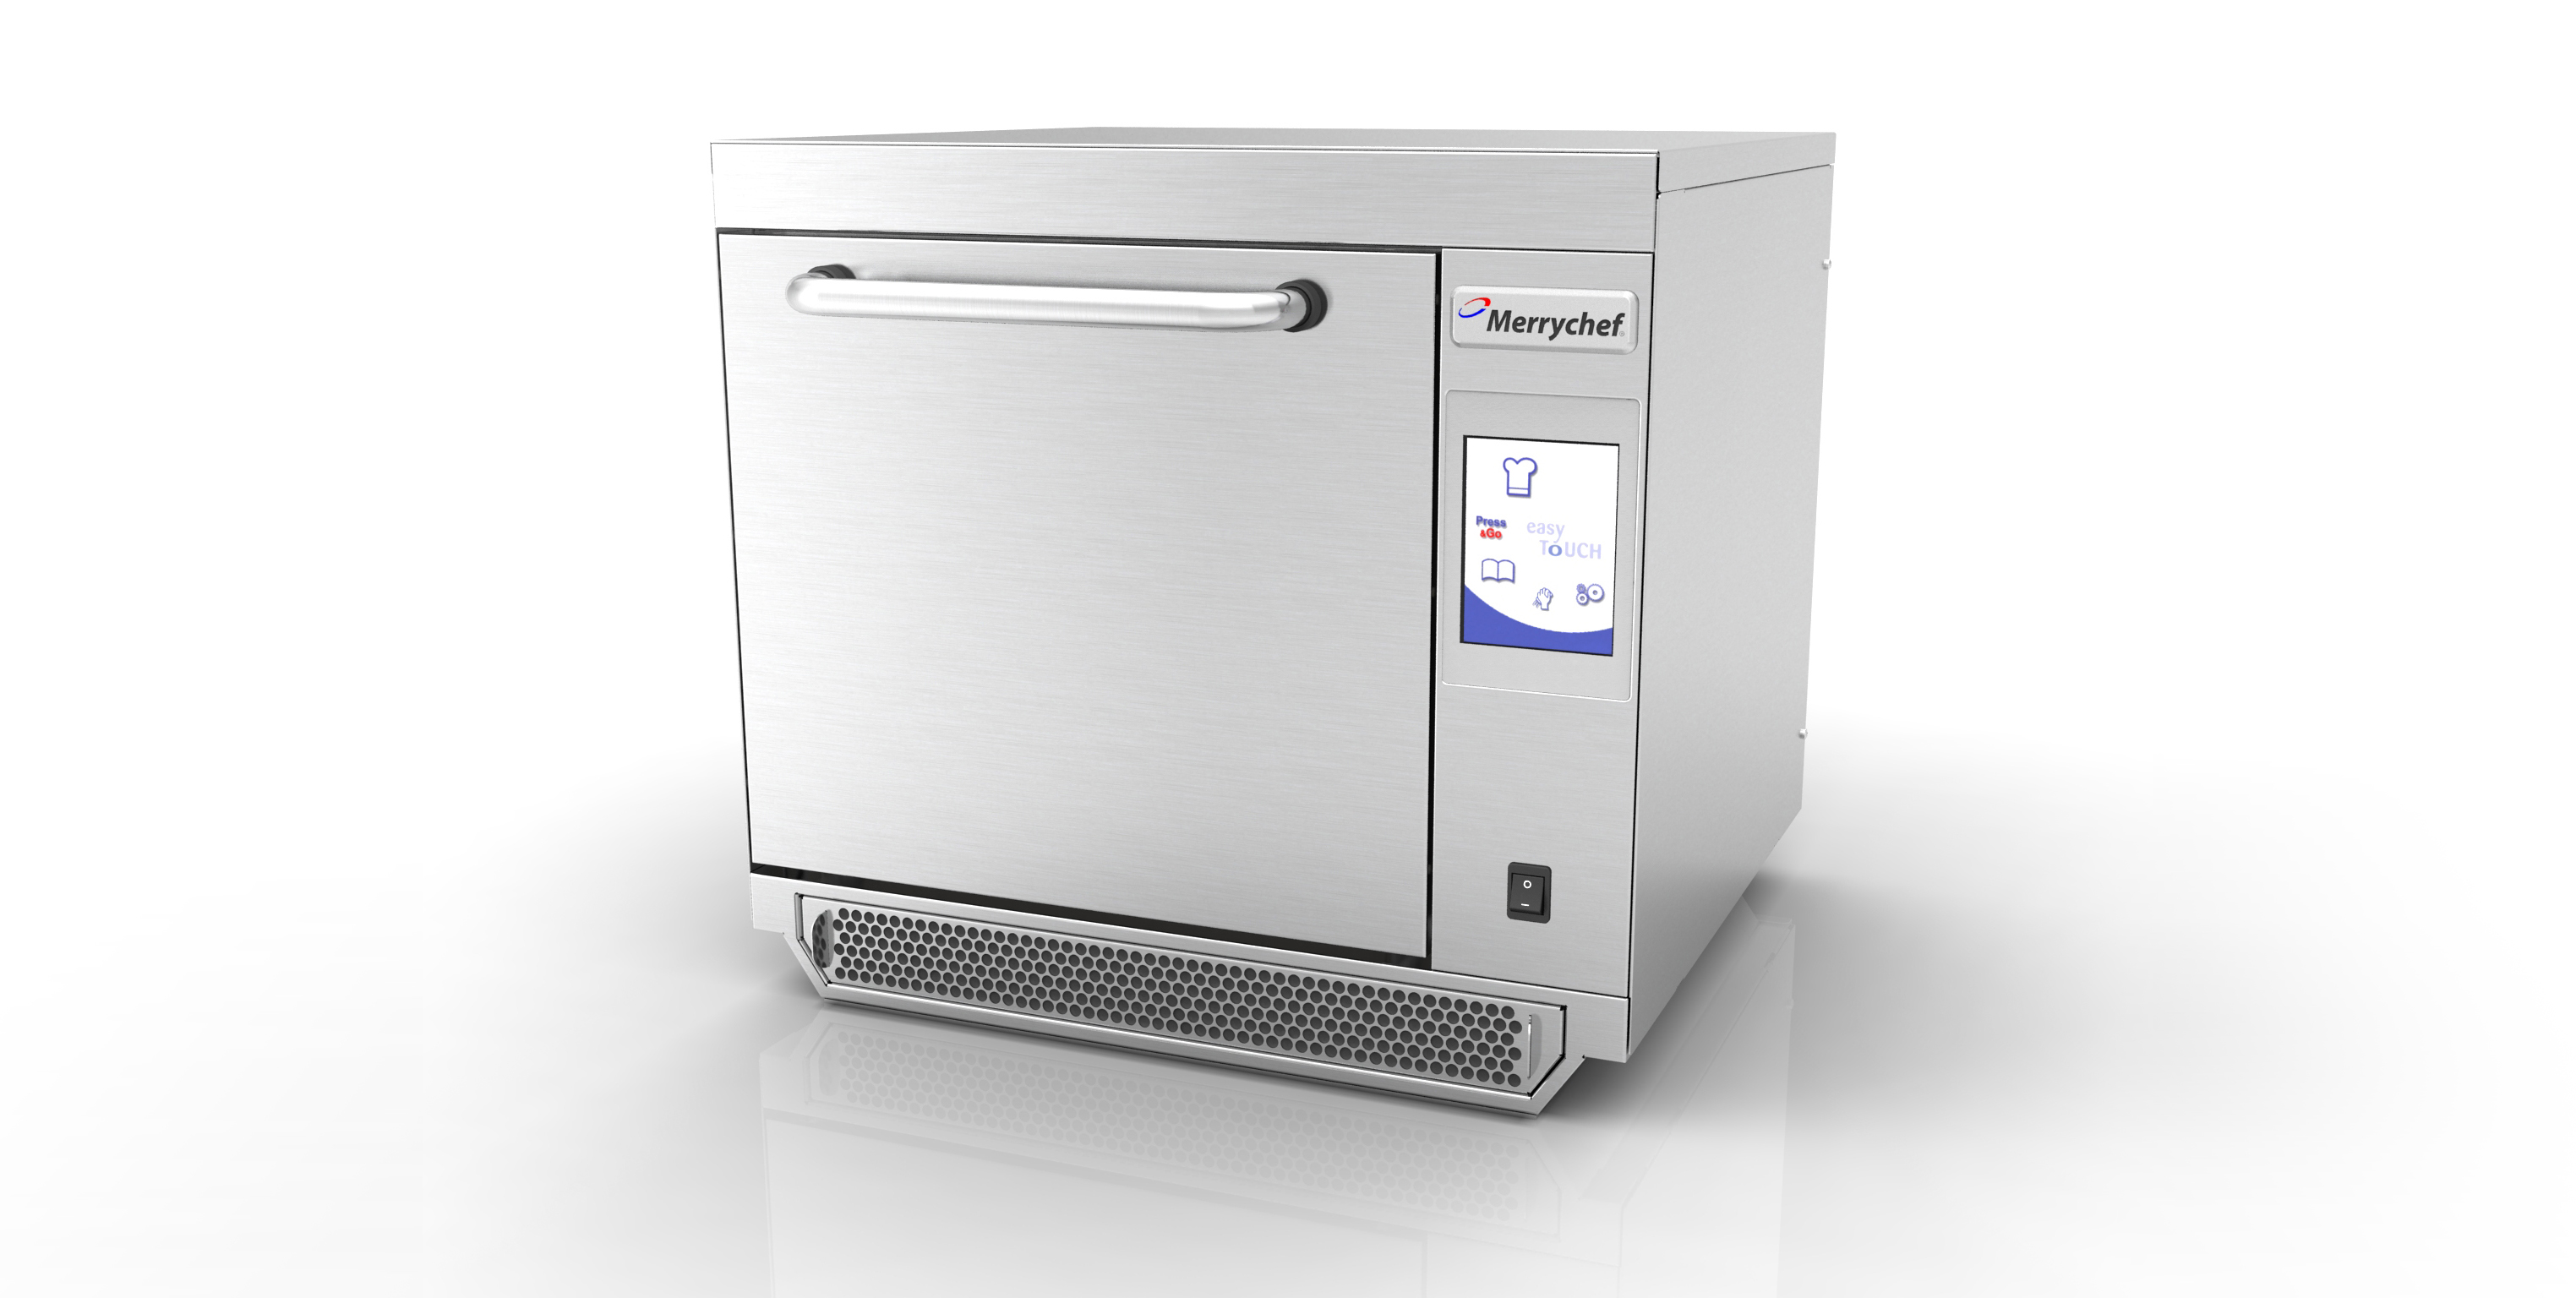 Merrychef Eikon Commercial Combination Microwave Ovens